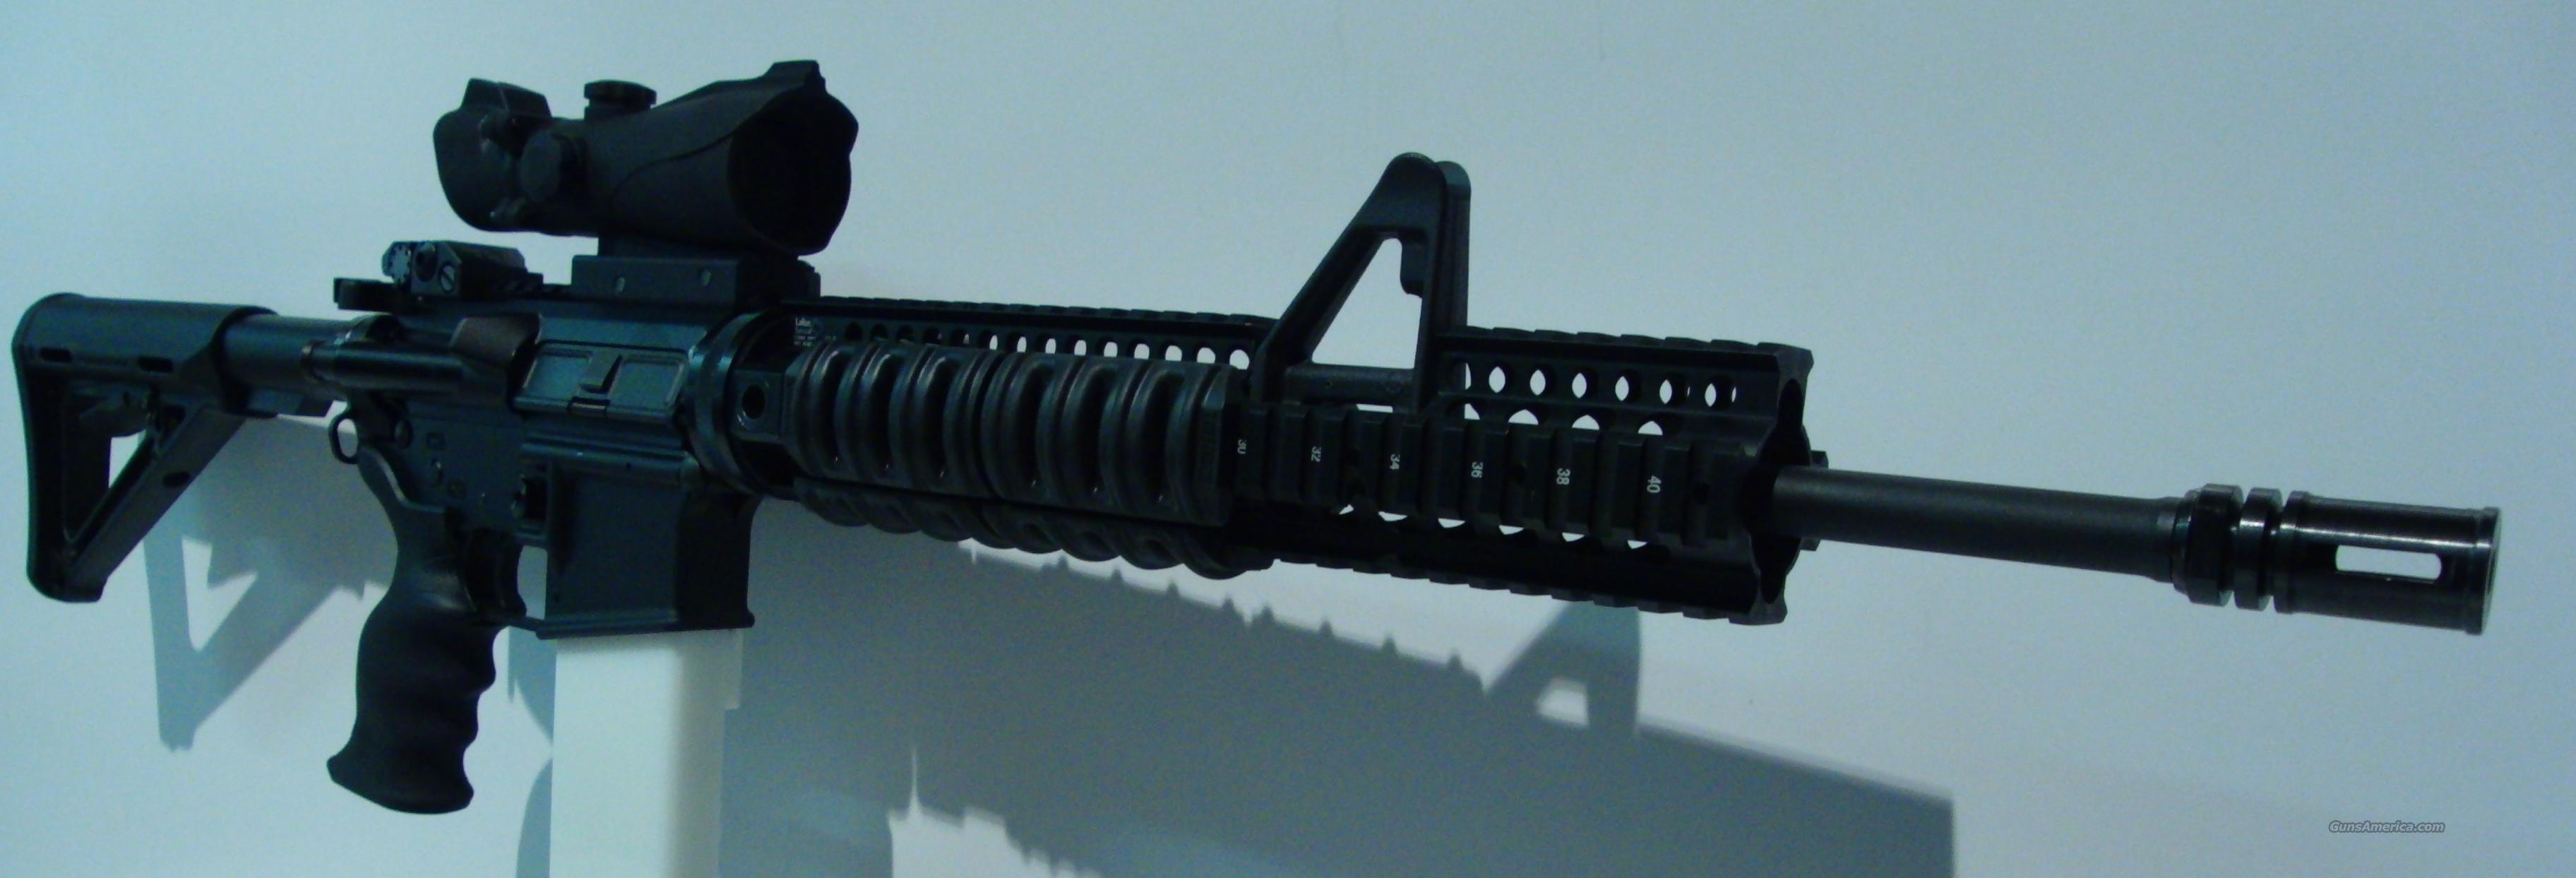 AR15 lightweight free float quadrail 223 CA compliant  Guns > Rifles > AR-15 Rifles - Small Manufacturers > Complete Rifle